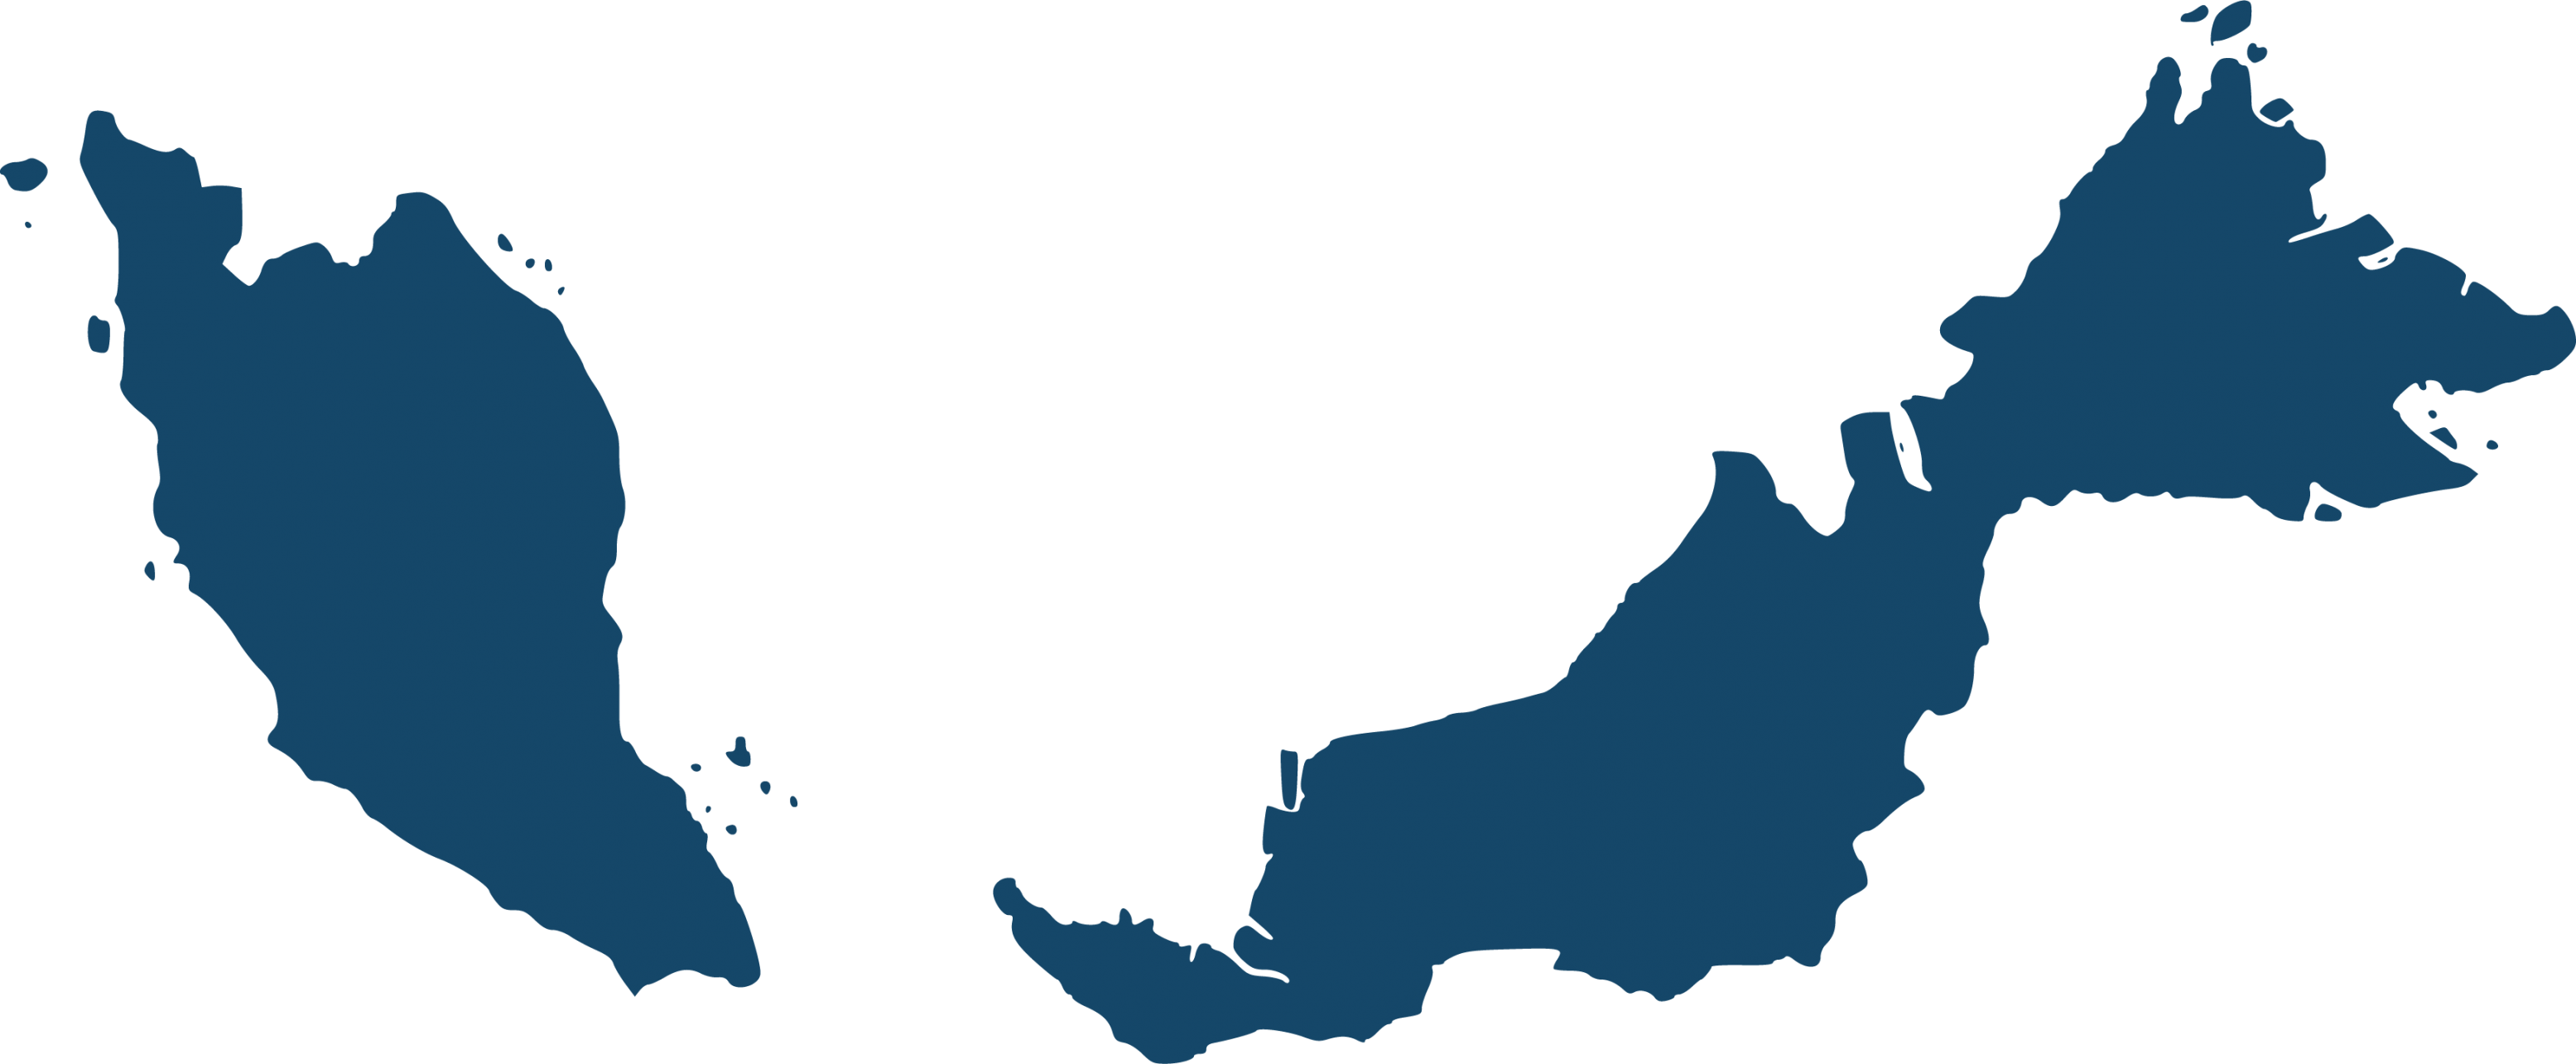 map outline of Malaysia